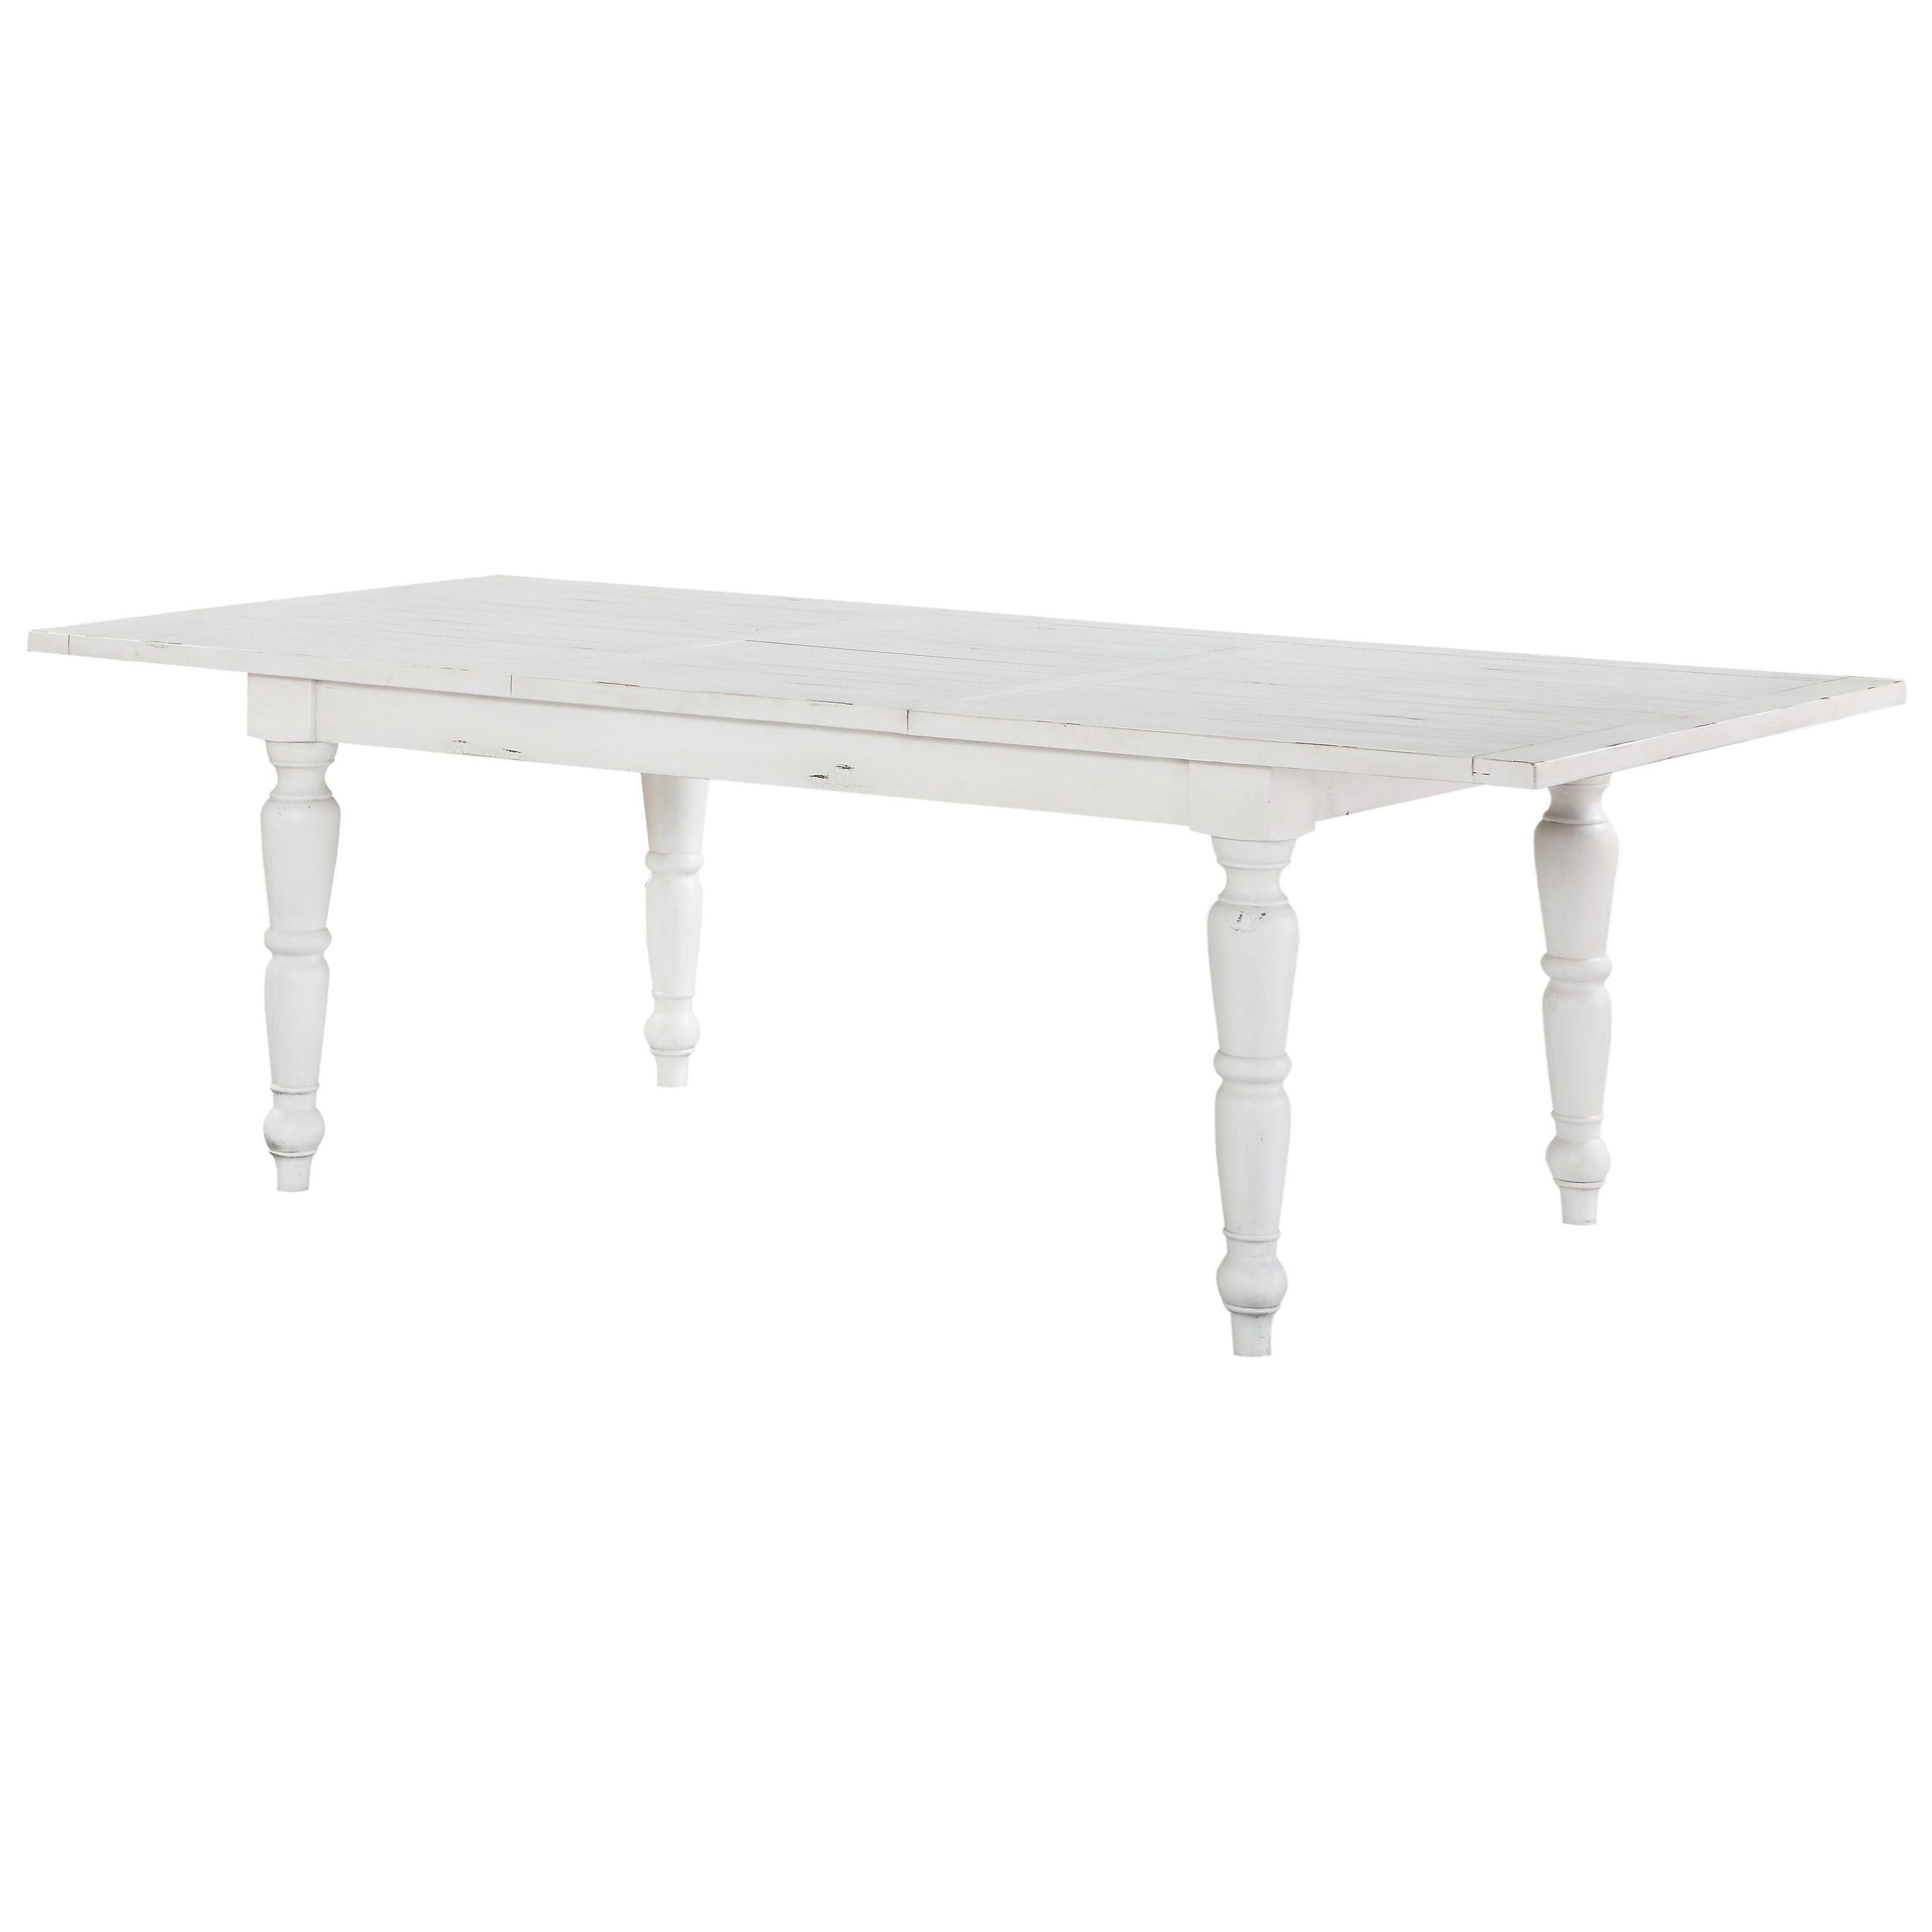 Abaco Rectangular Dining Table by Emerald at Northeast Factory Direct